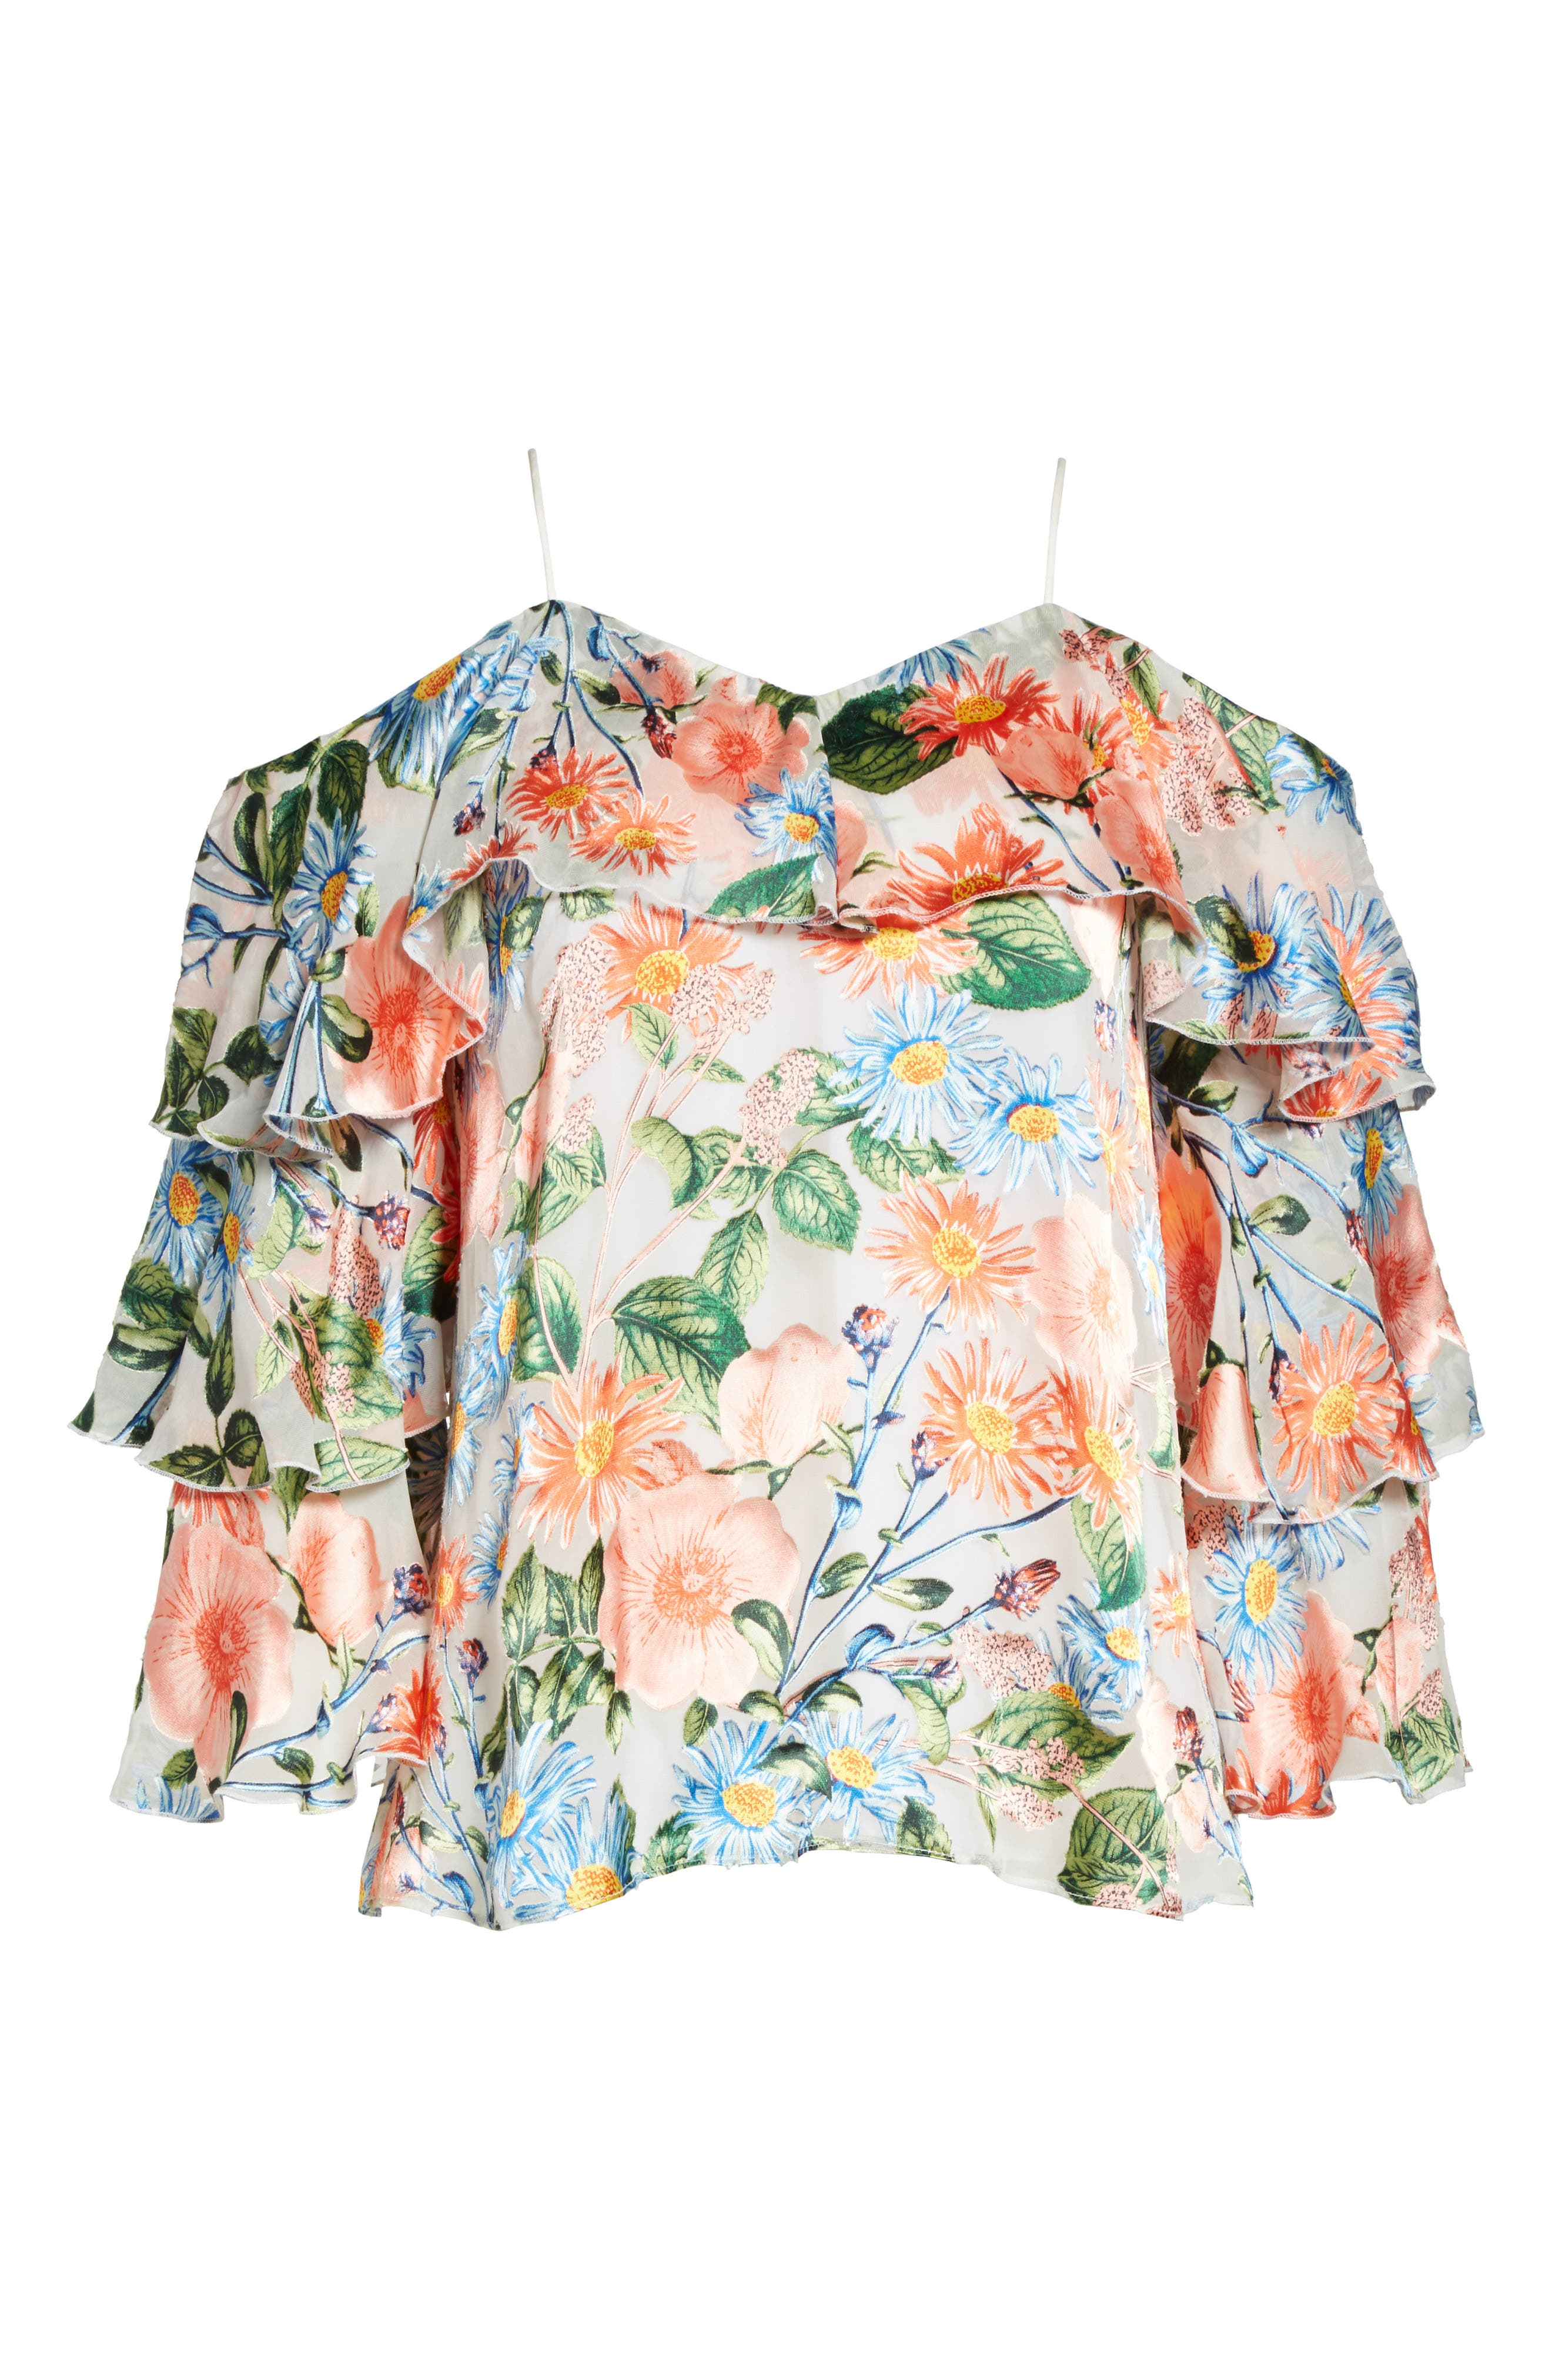 Marylee Floral Off the Shoulder Blouse,                             Alternate thumbnail 6, color,                             470